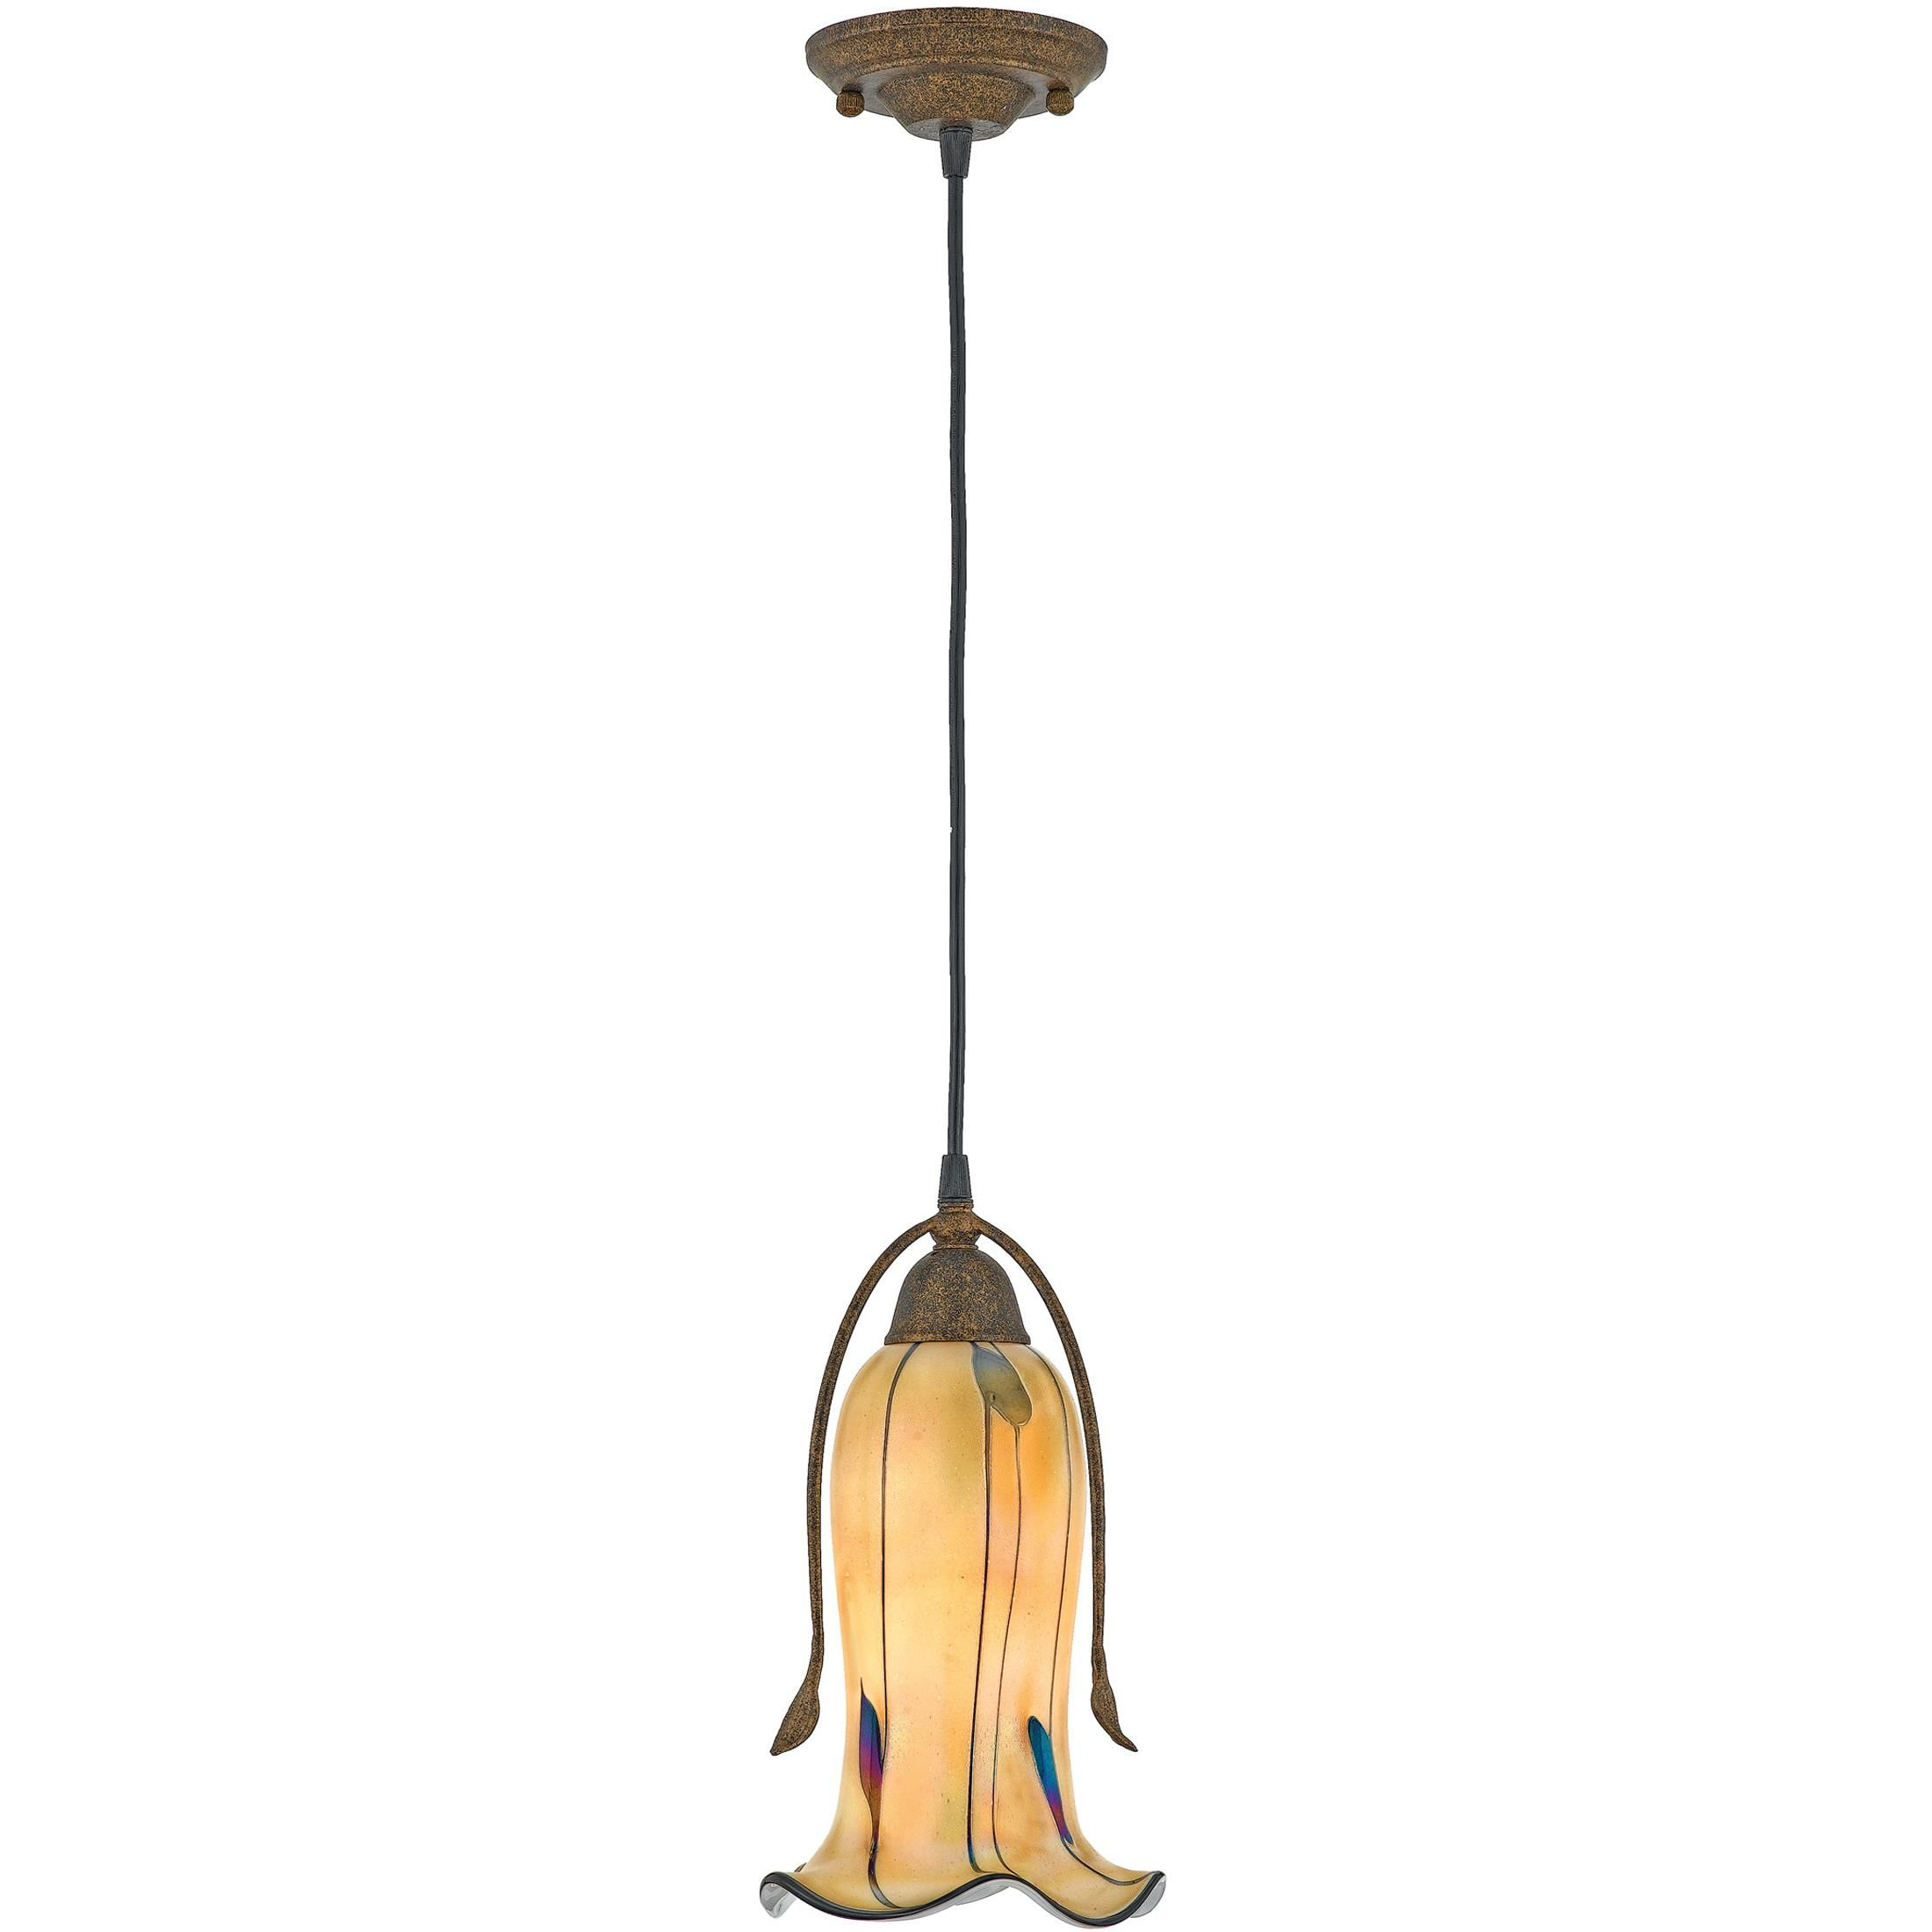 lamps table qz products quoizel lamp tl indus tiffany large